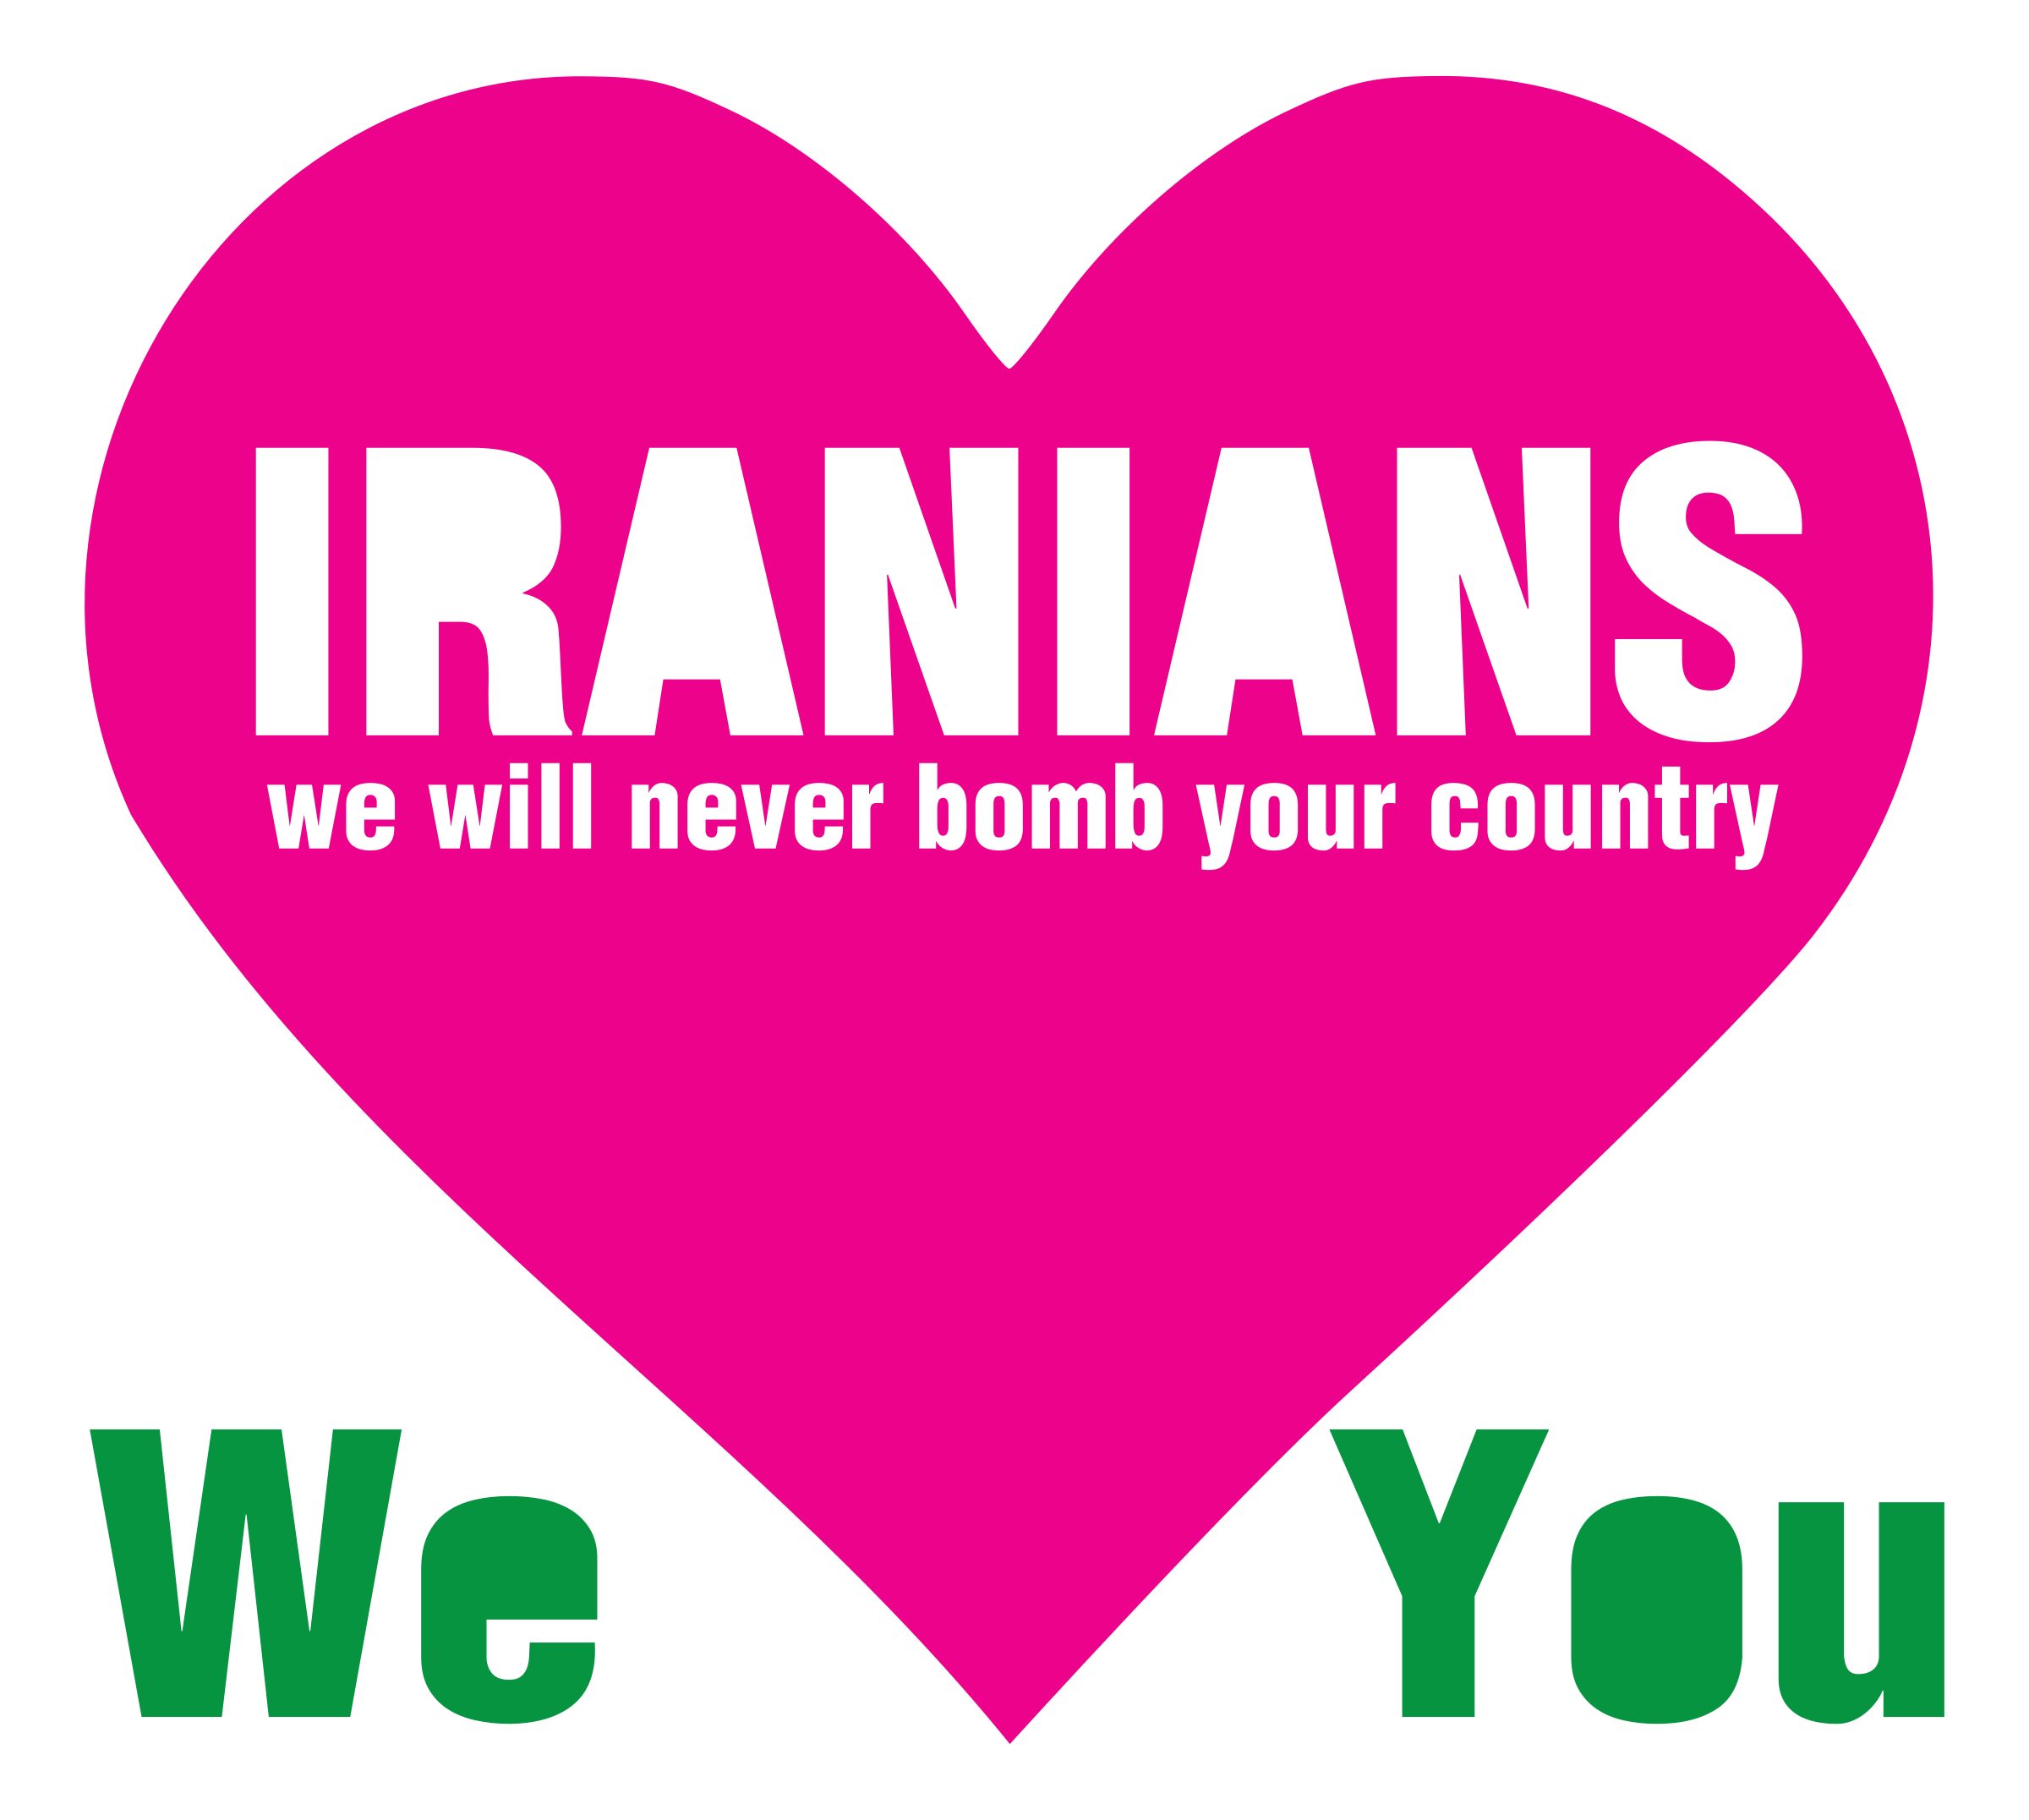 IRANIANS - we will never bomb your country -  We love You by worker